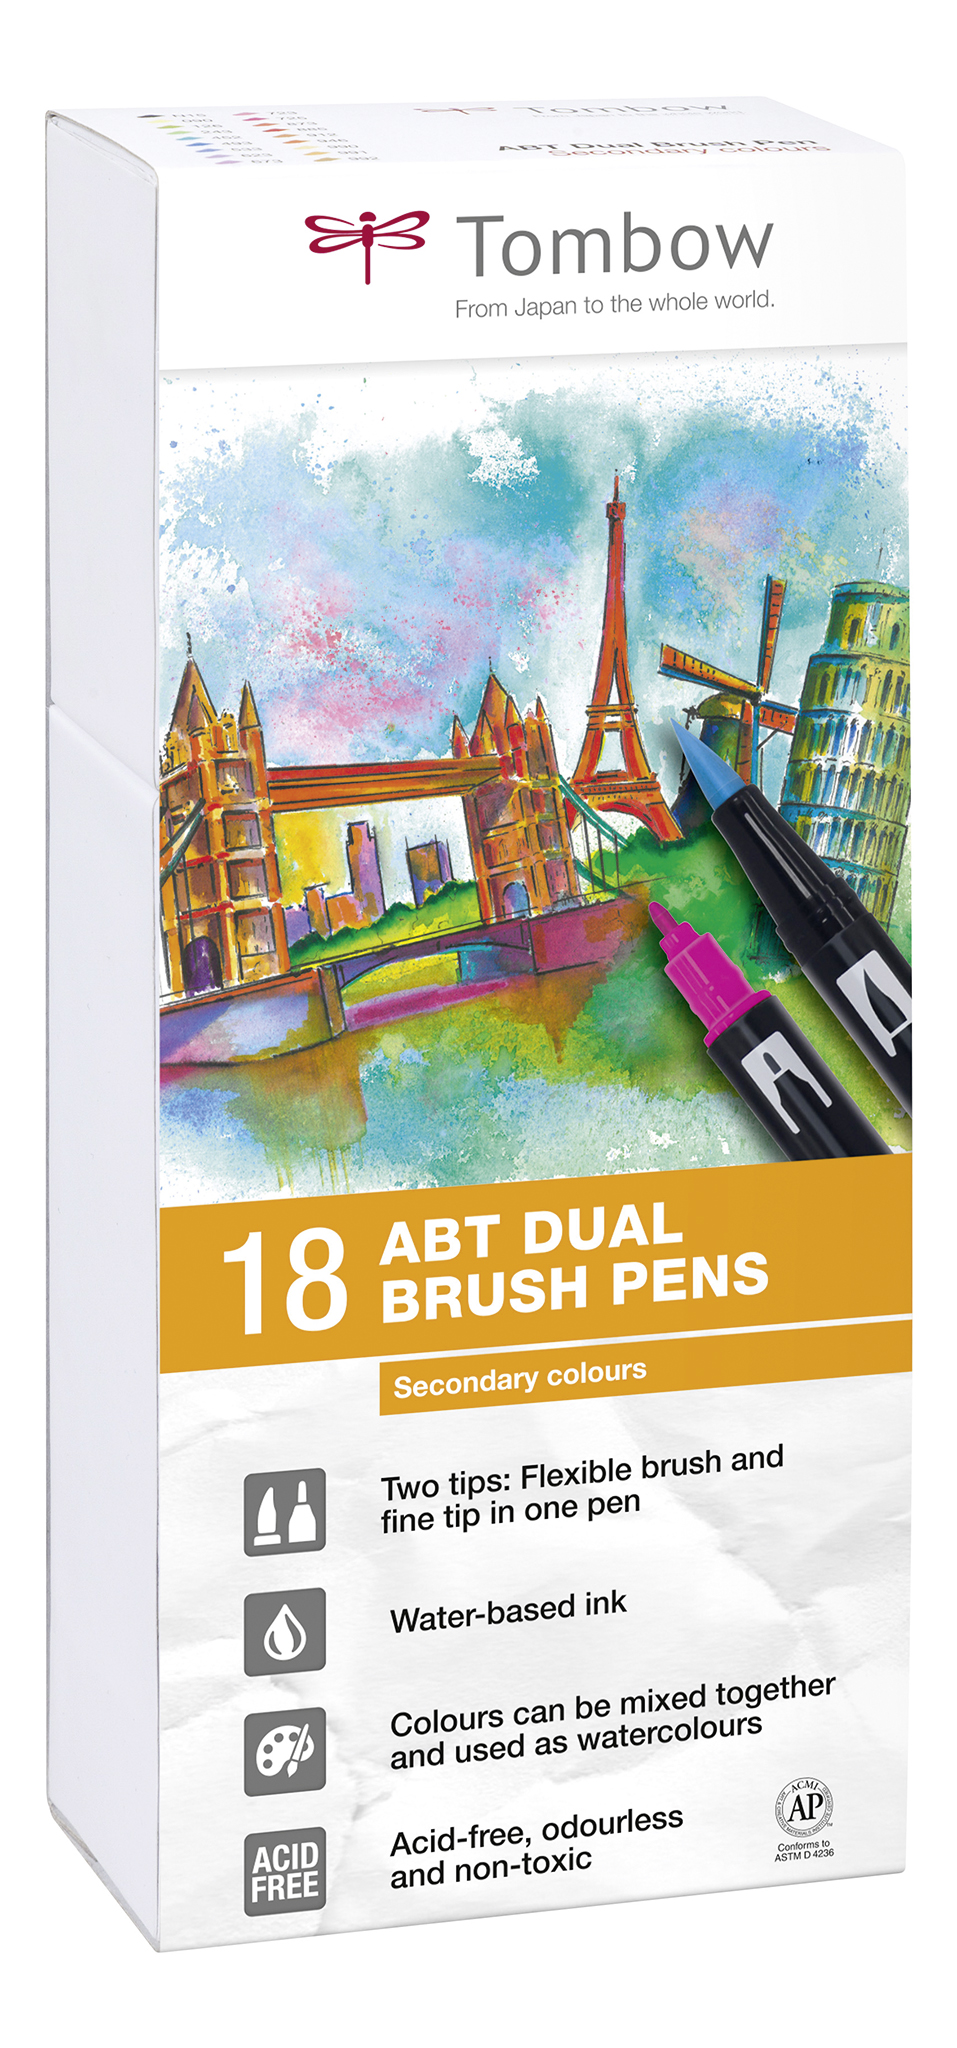 ABT Dual Brush Pen Scndry clrs PK18